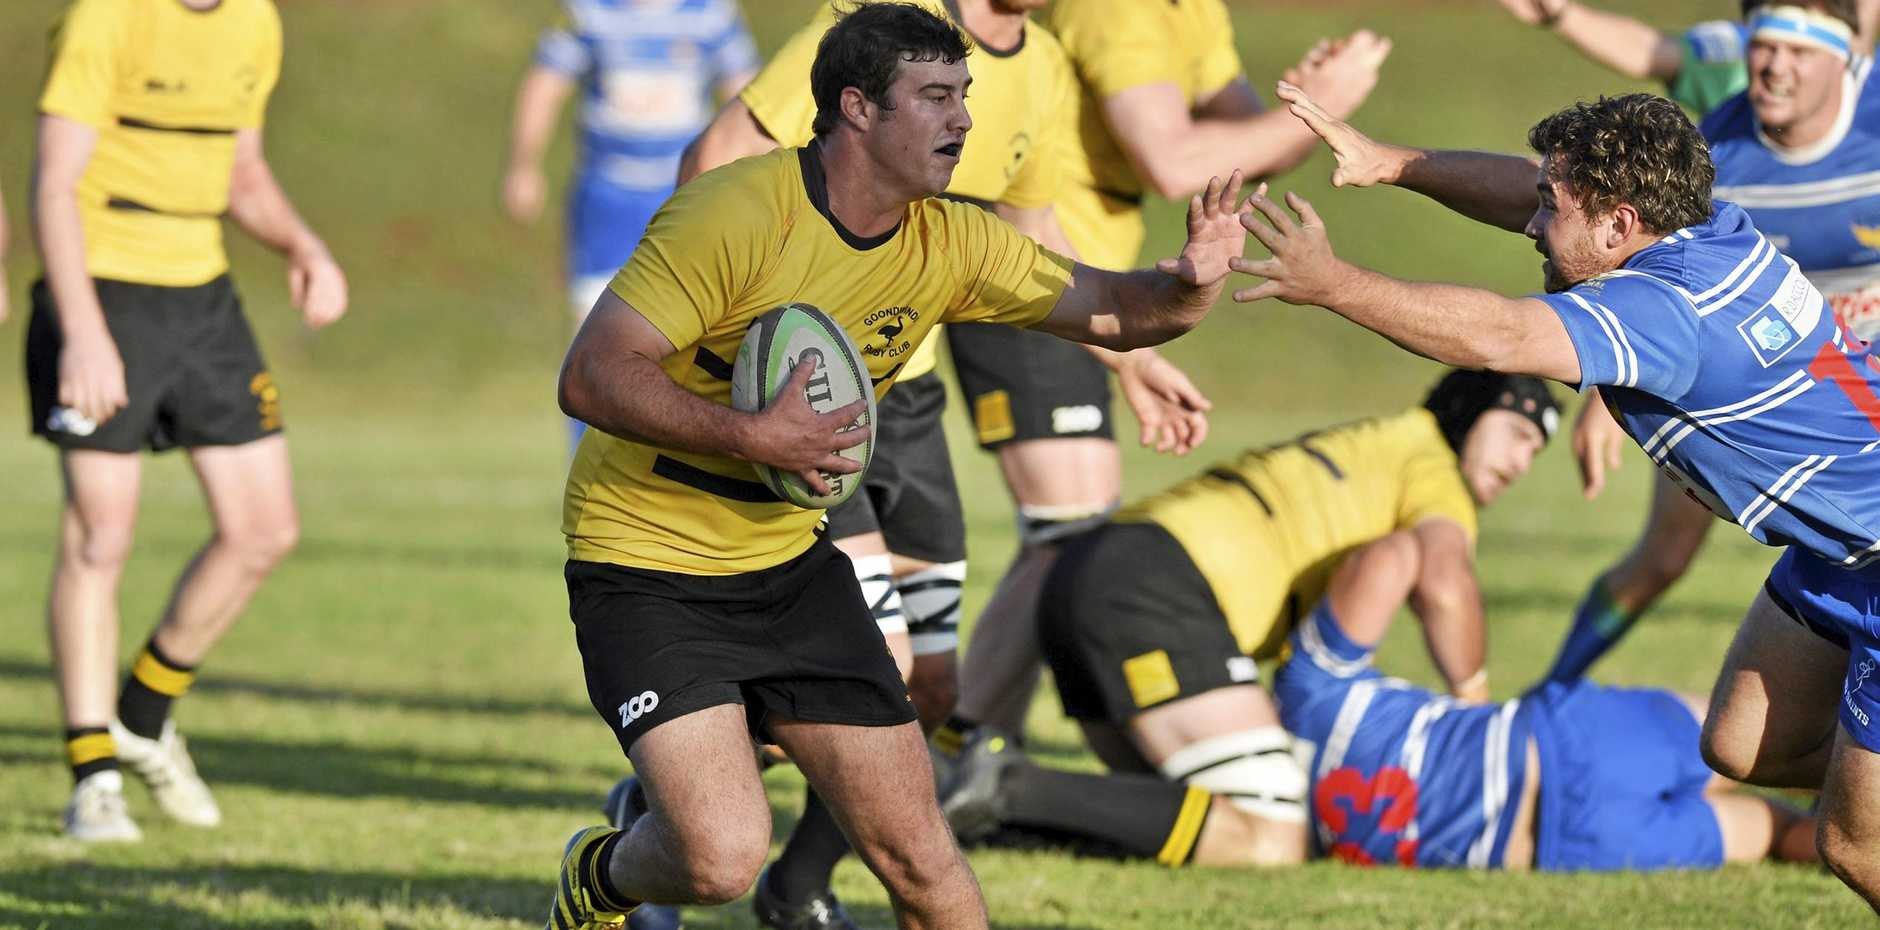 Sam Jobling of Goondiwindi looks to beat the attempted tackle of USQ's Liam Harms in their round-one Risdon Cup match at USQ Oval last month.